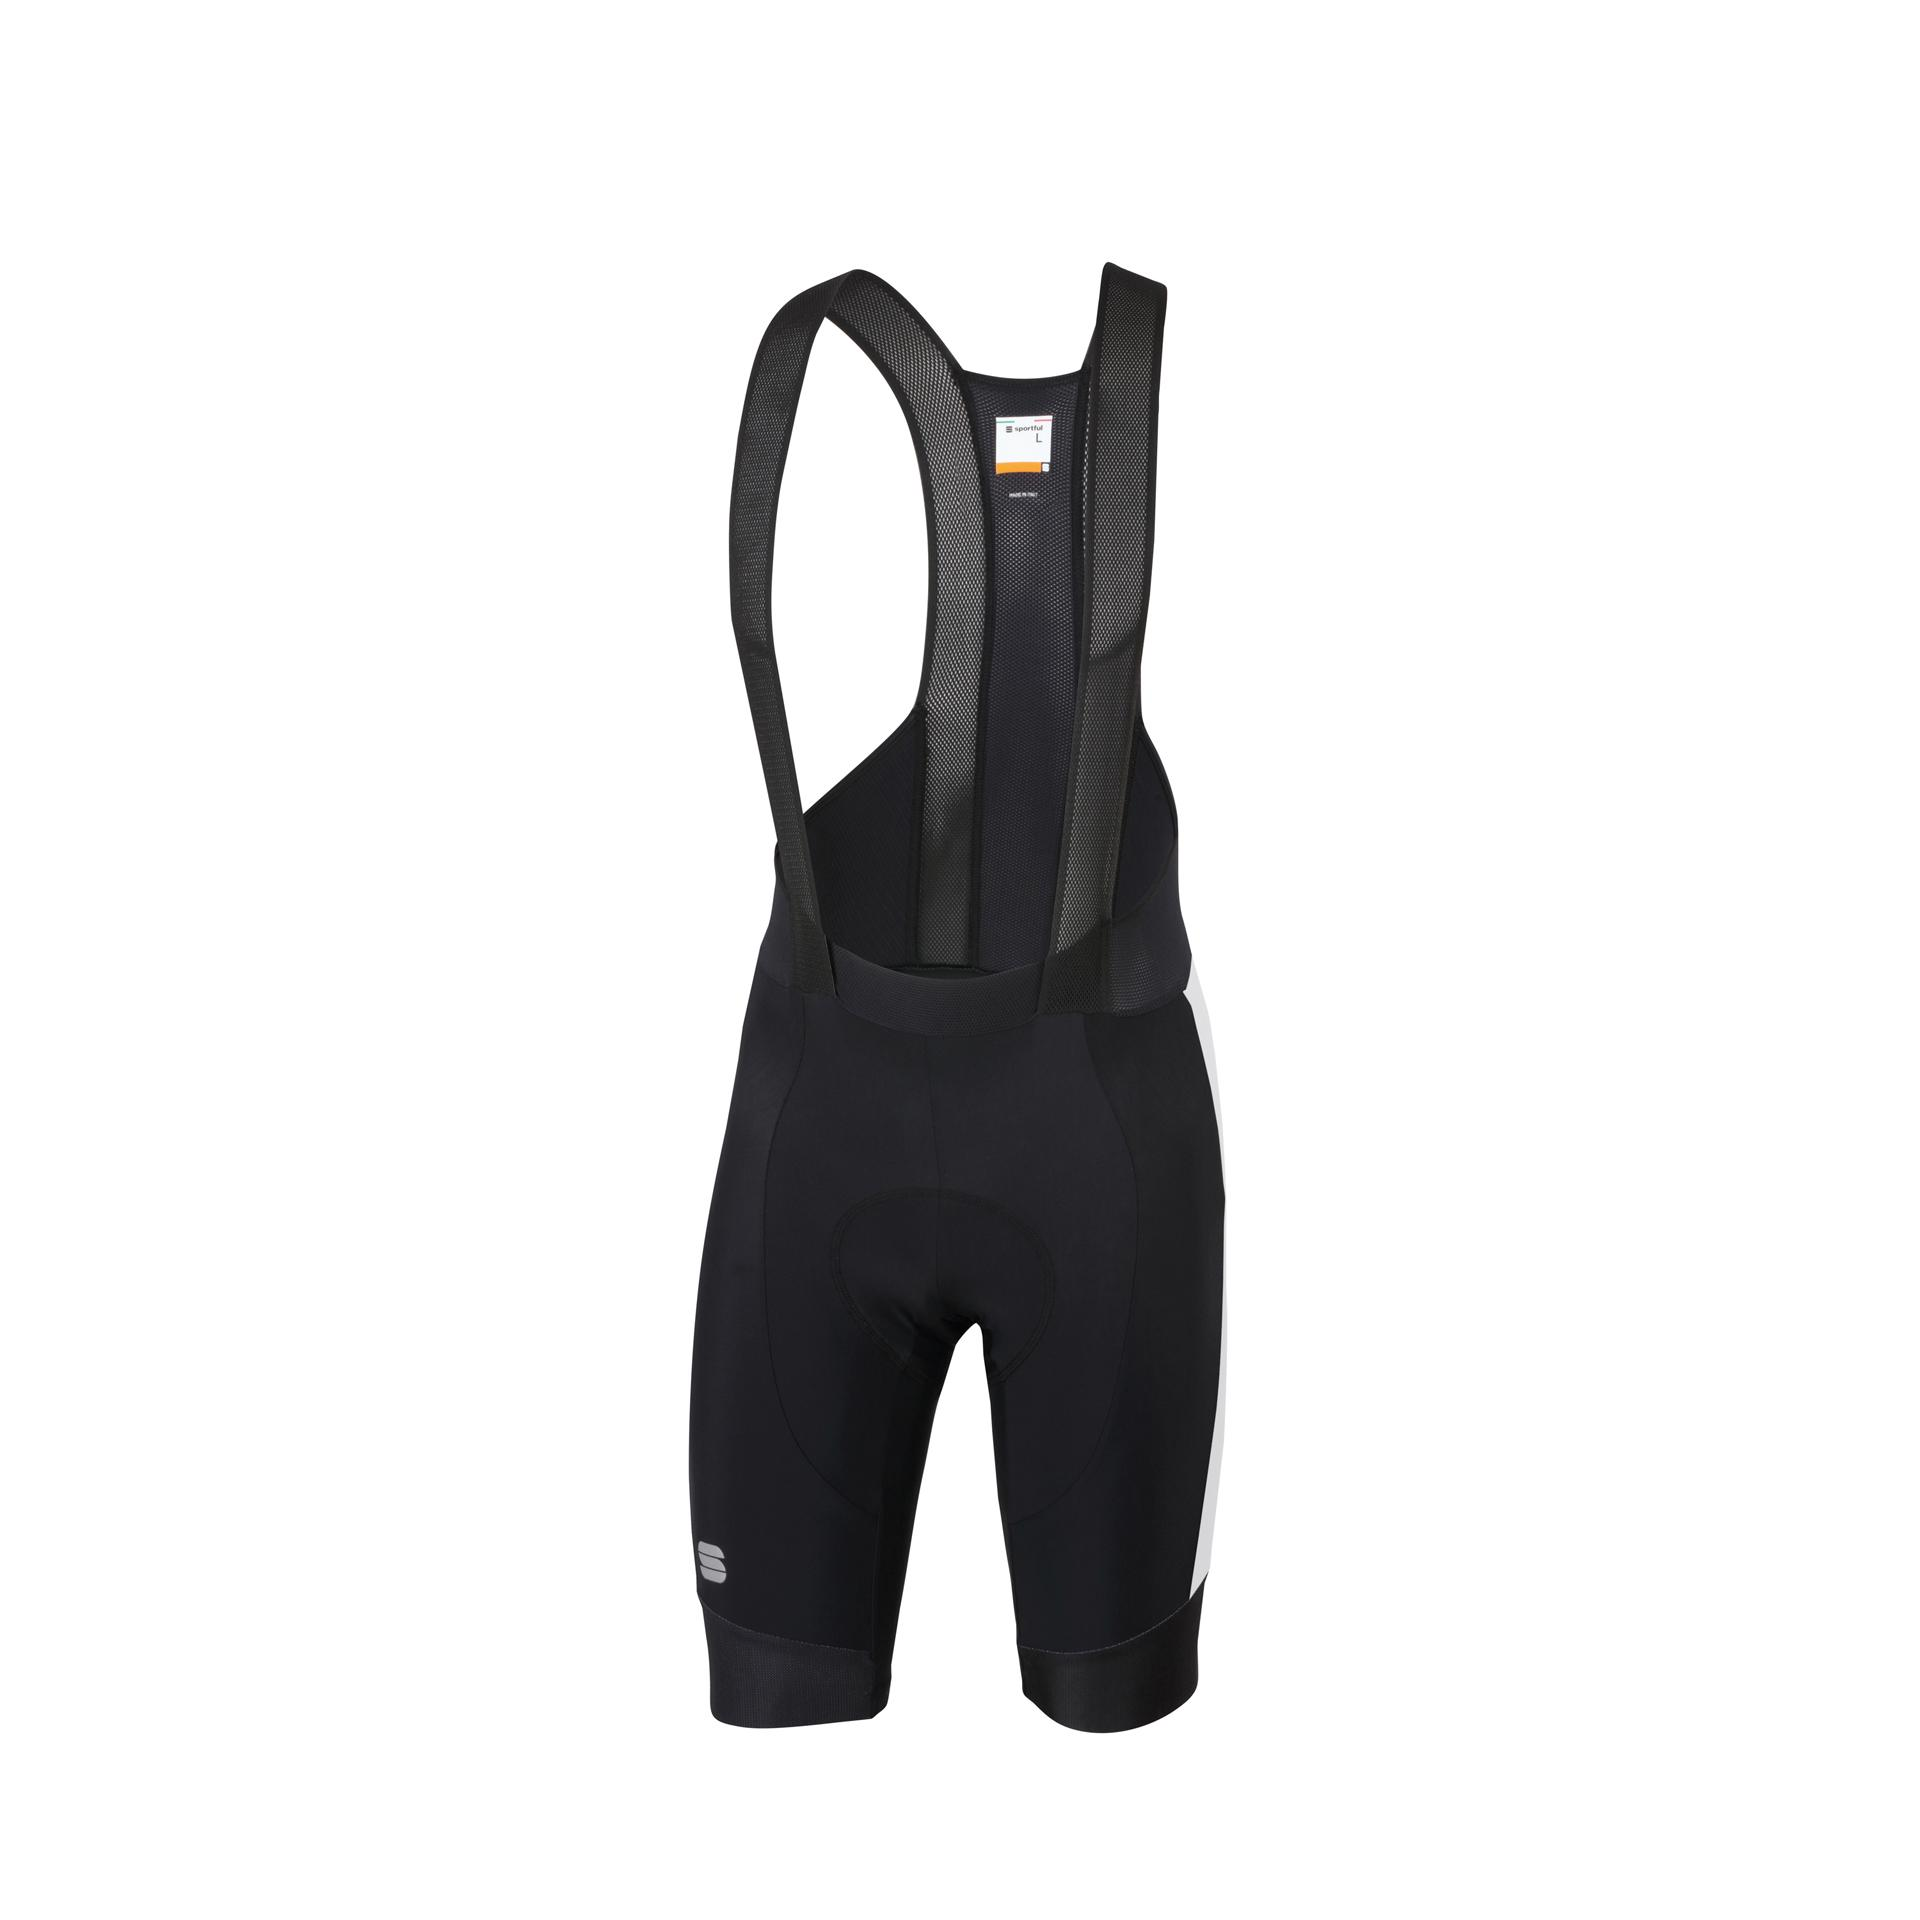 Sportful Fietsbroek met bretels - koersbroek Heren Zwart Wit / SF Gts  Bibshort-Black/White